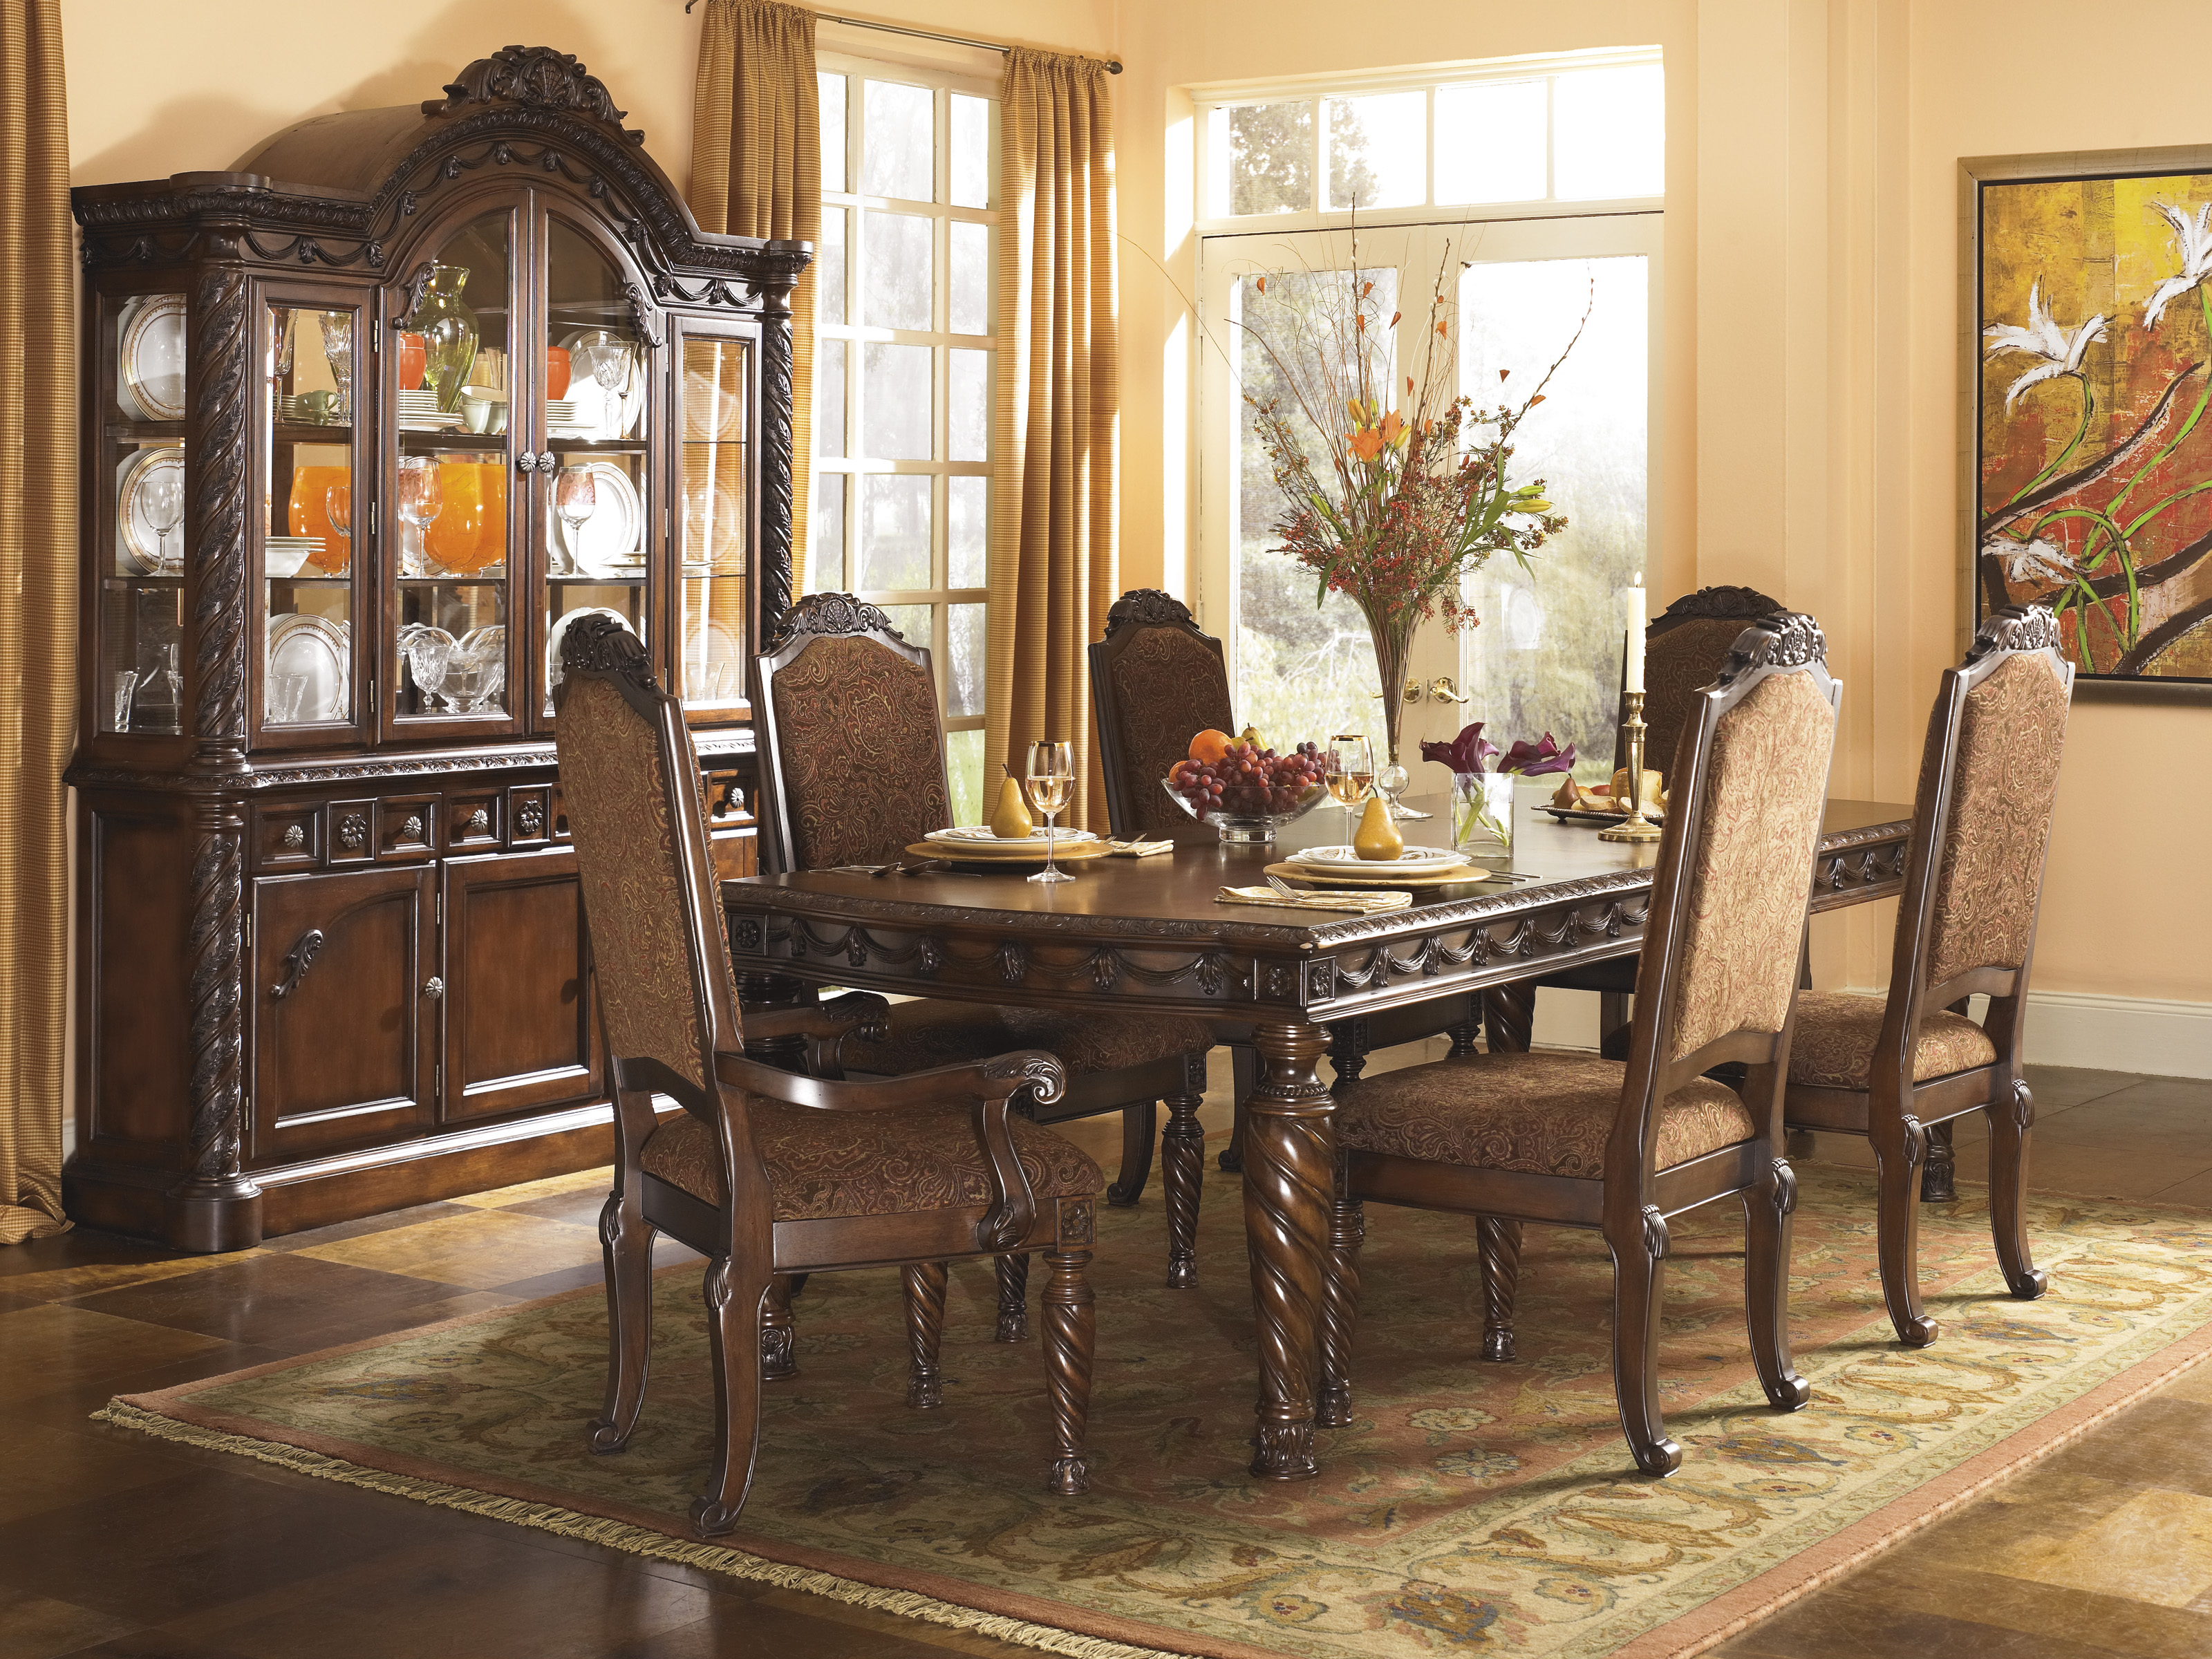 Ashley D533 7-Piece North Shore Pedestal Table Dining Room Set